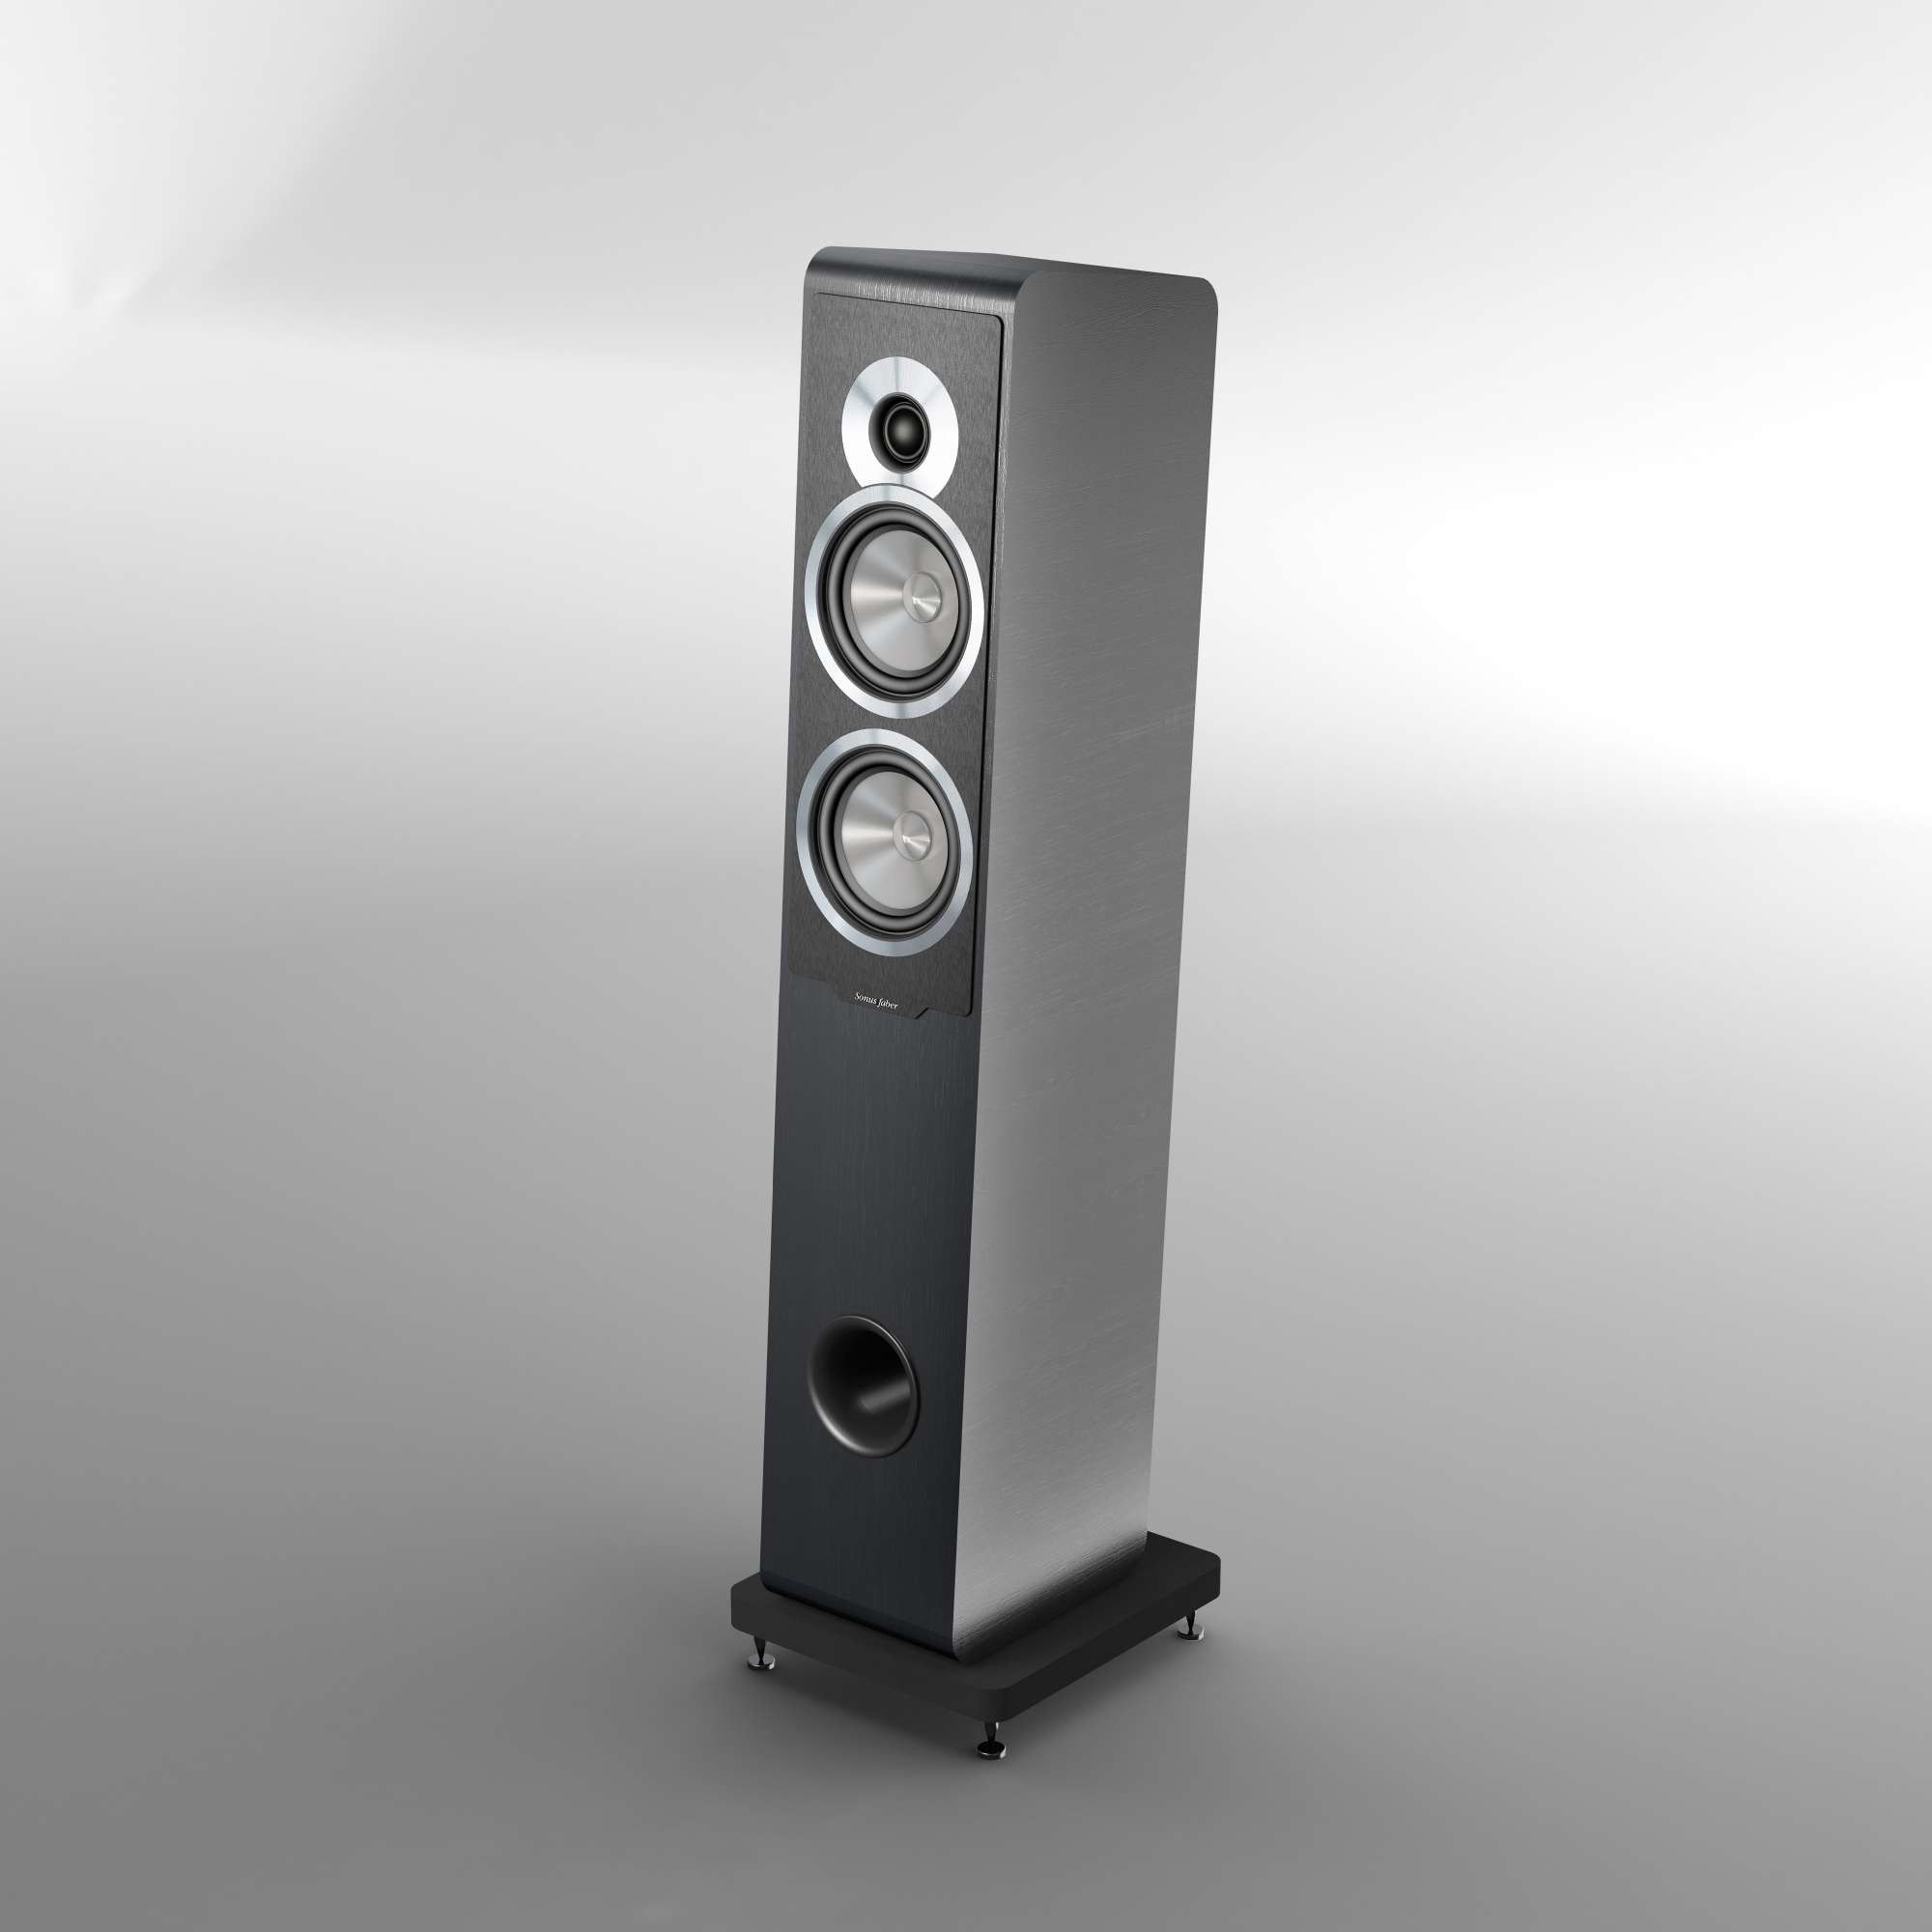 Sonus Faber Principia 5 Floorstanding-Speaker, black (checked return)